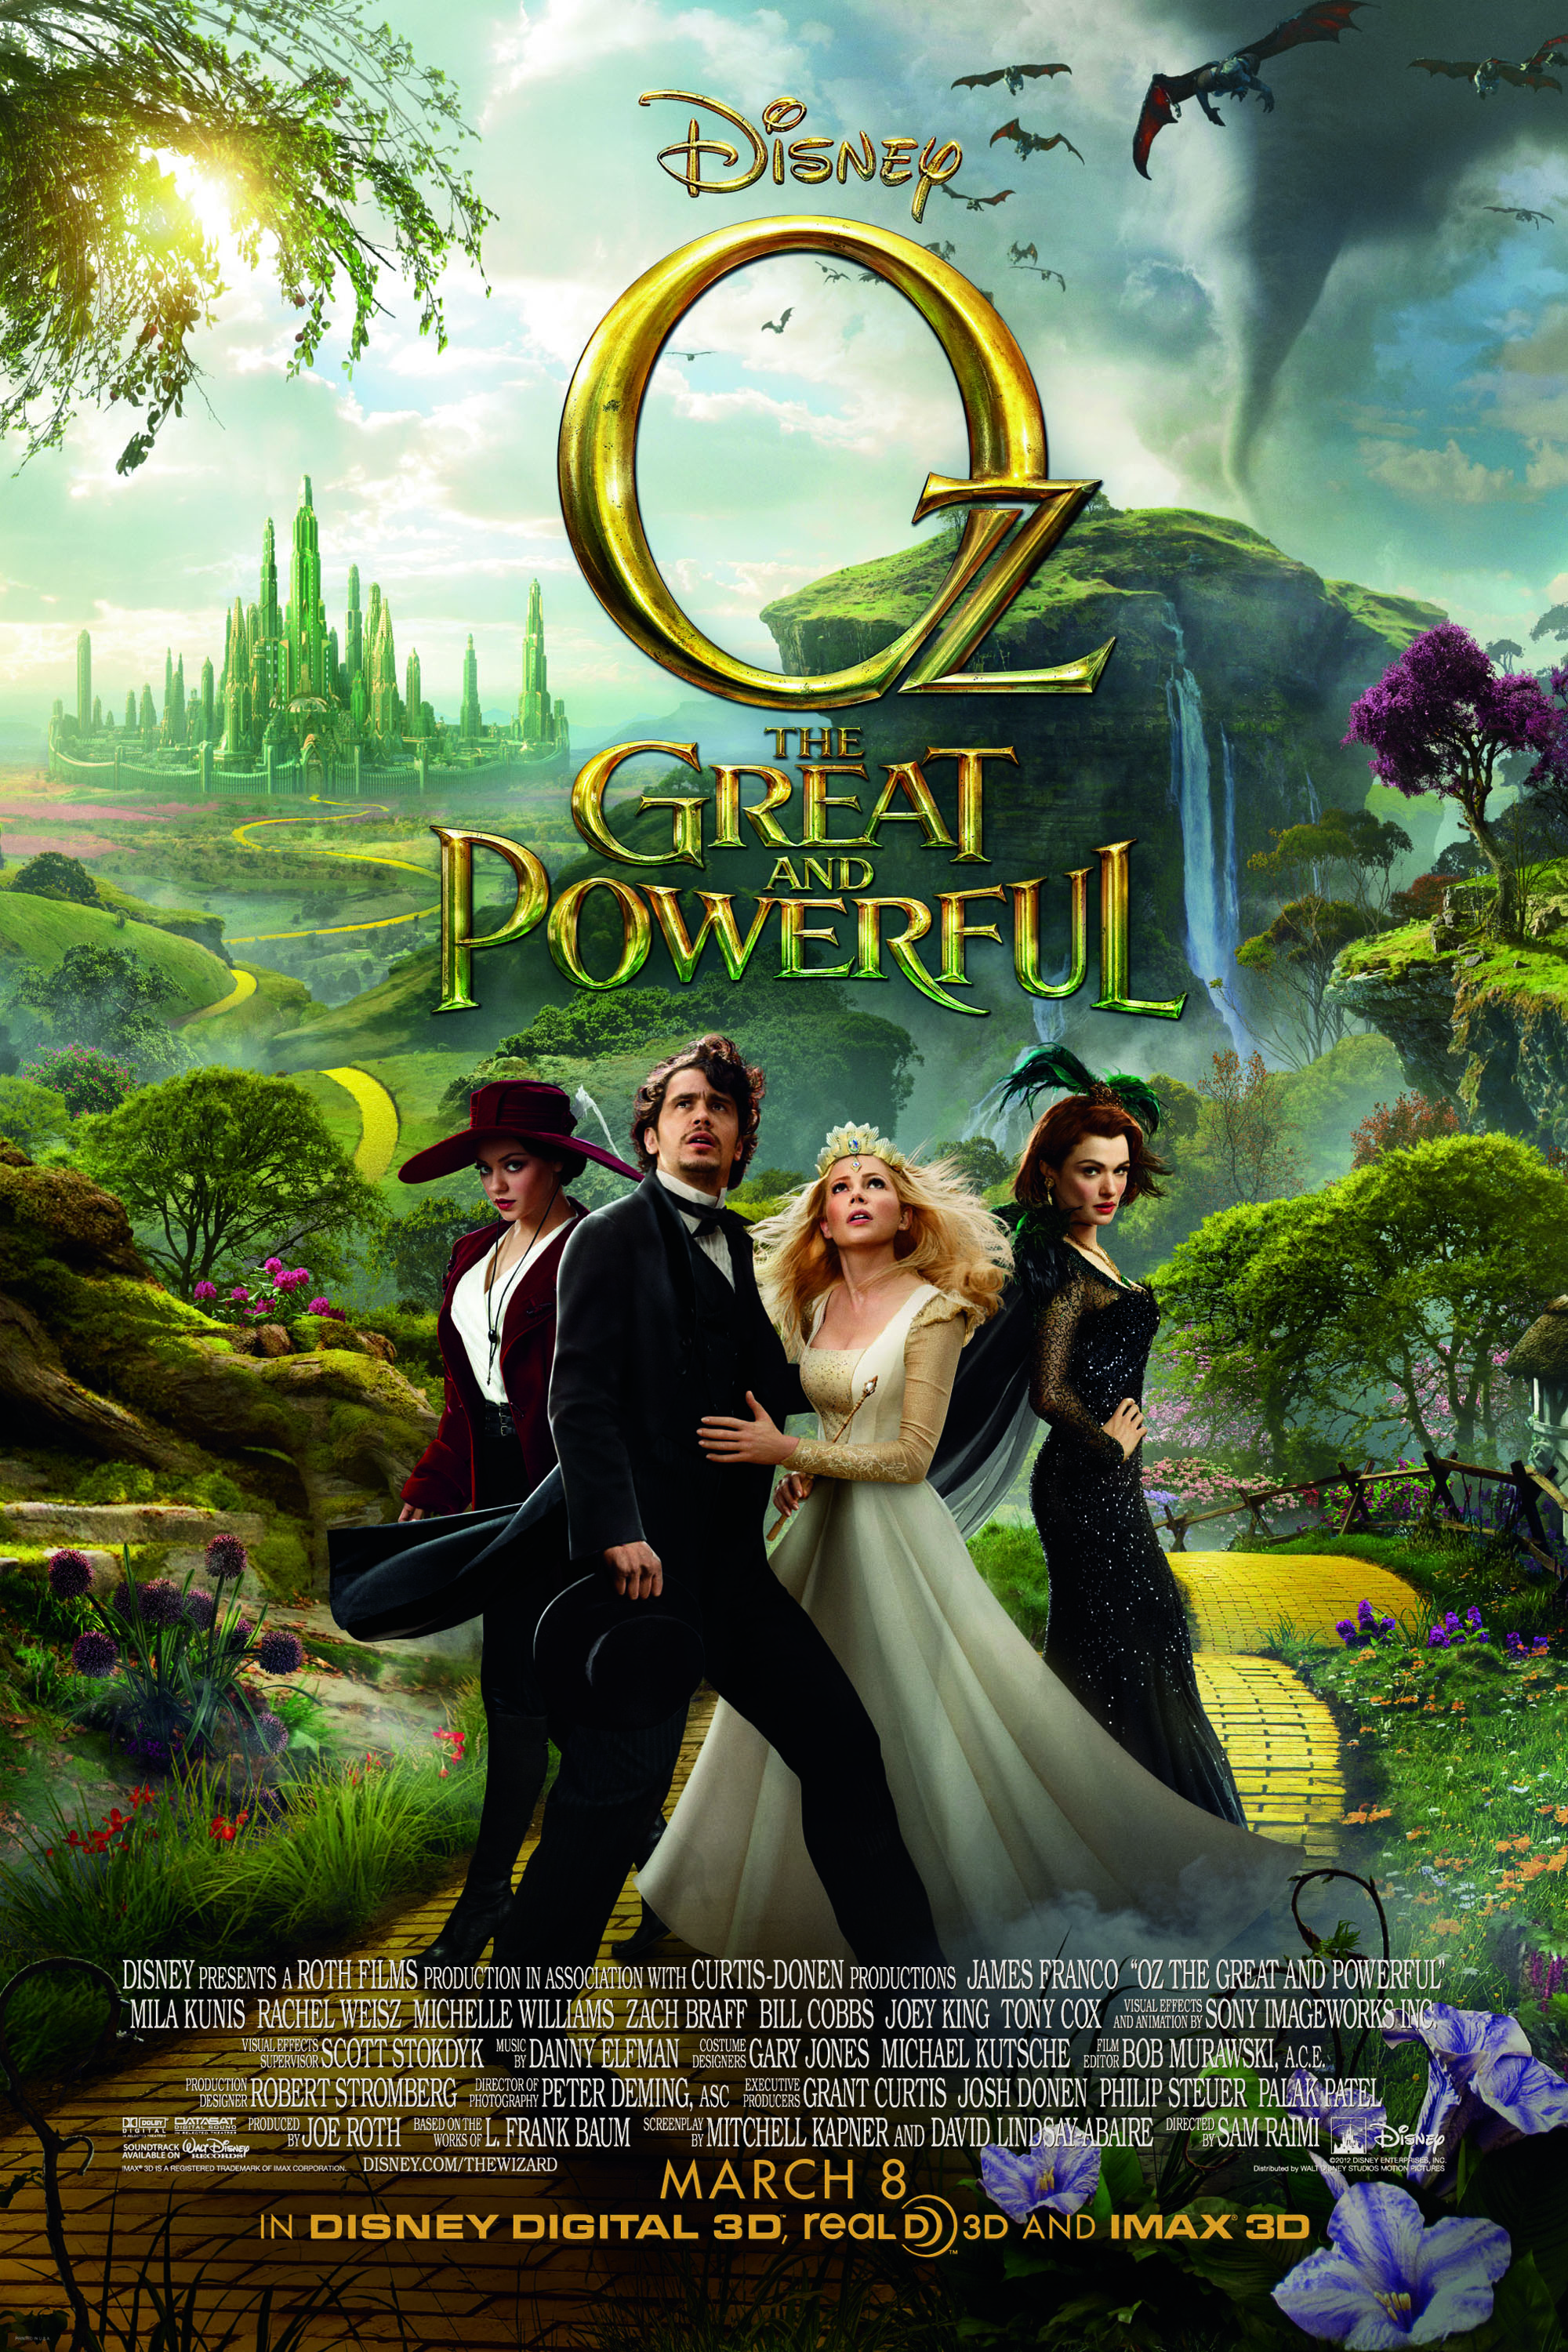 Oz the Great and Powerful (2013) Cast and Crew, Trivia ... Oz The Great And Powerful Cast And Crew